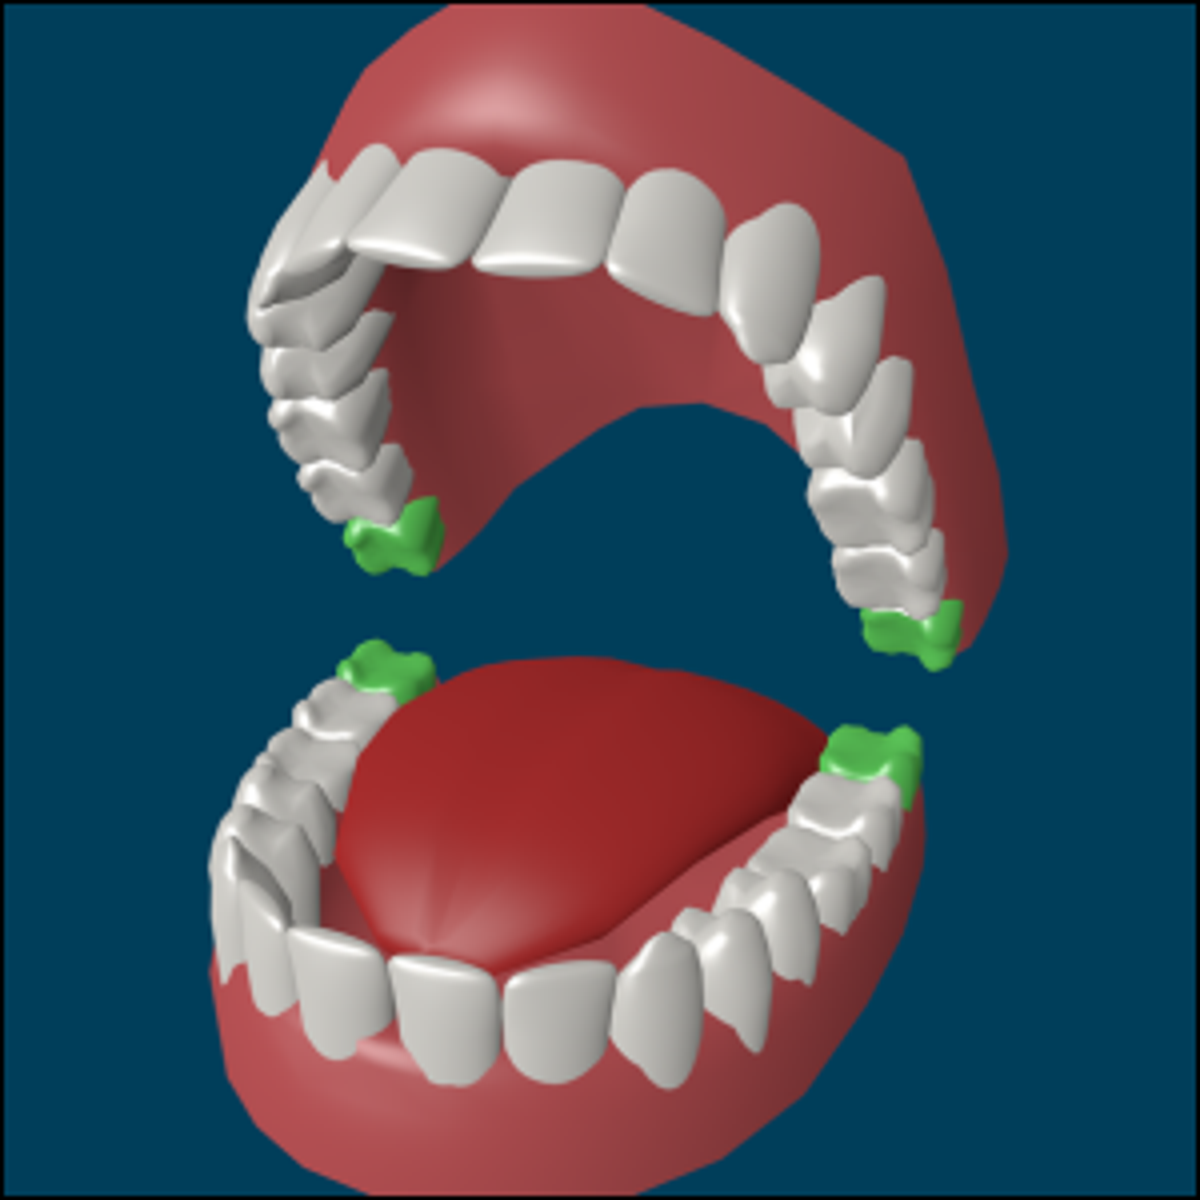 A model of human teeth with the wisdom teeth marked in green.